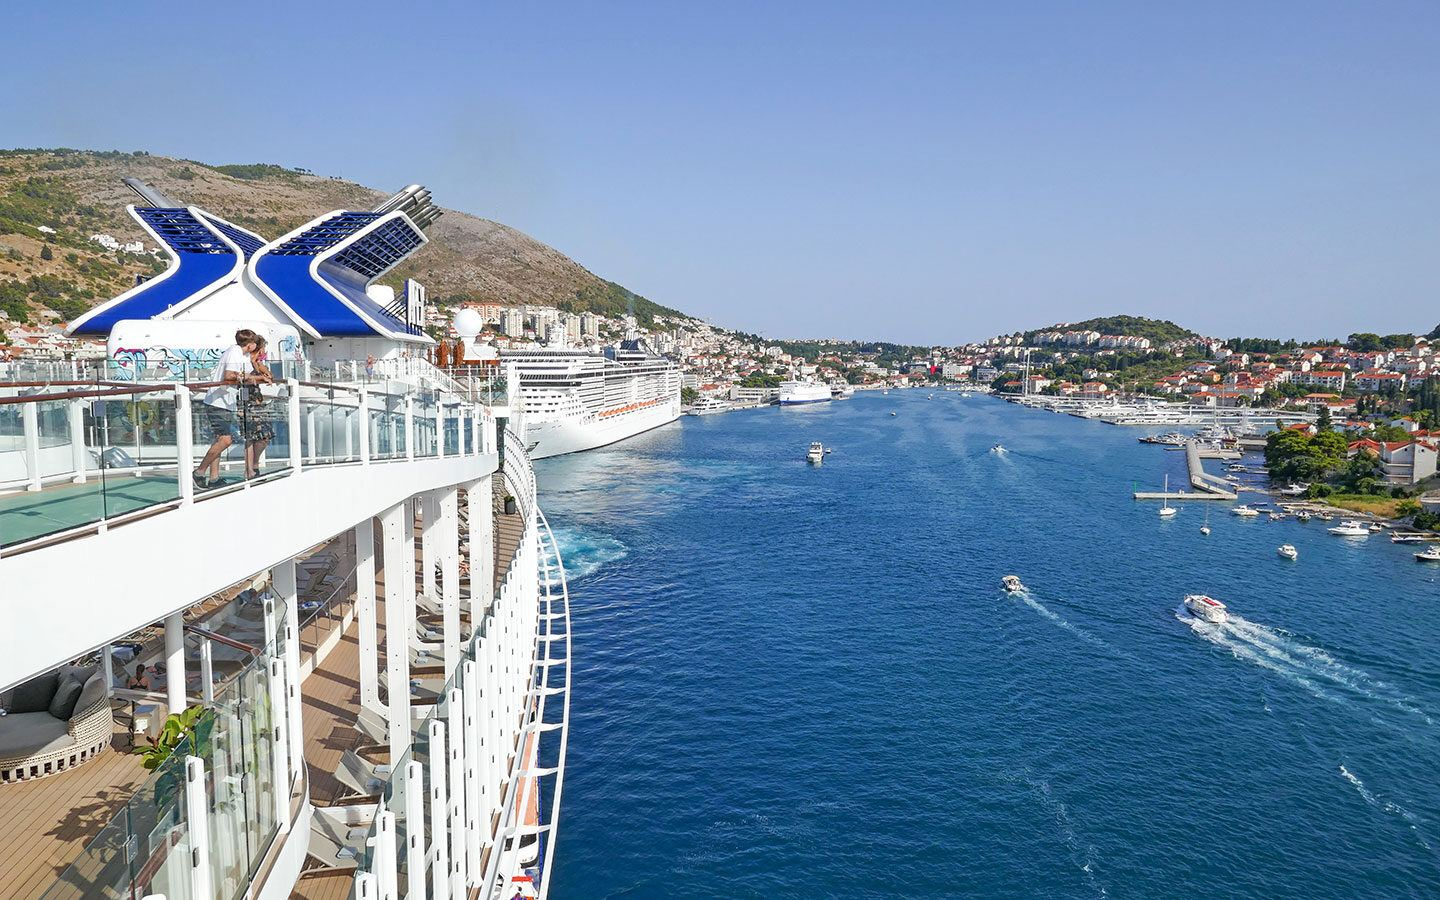 Visiting Dubrovnik on a cruise during the pandemic